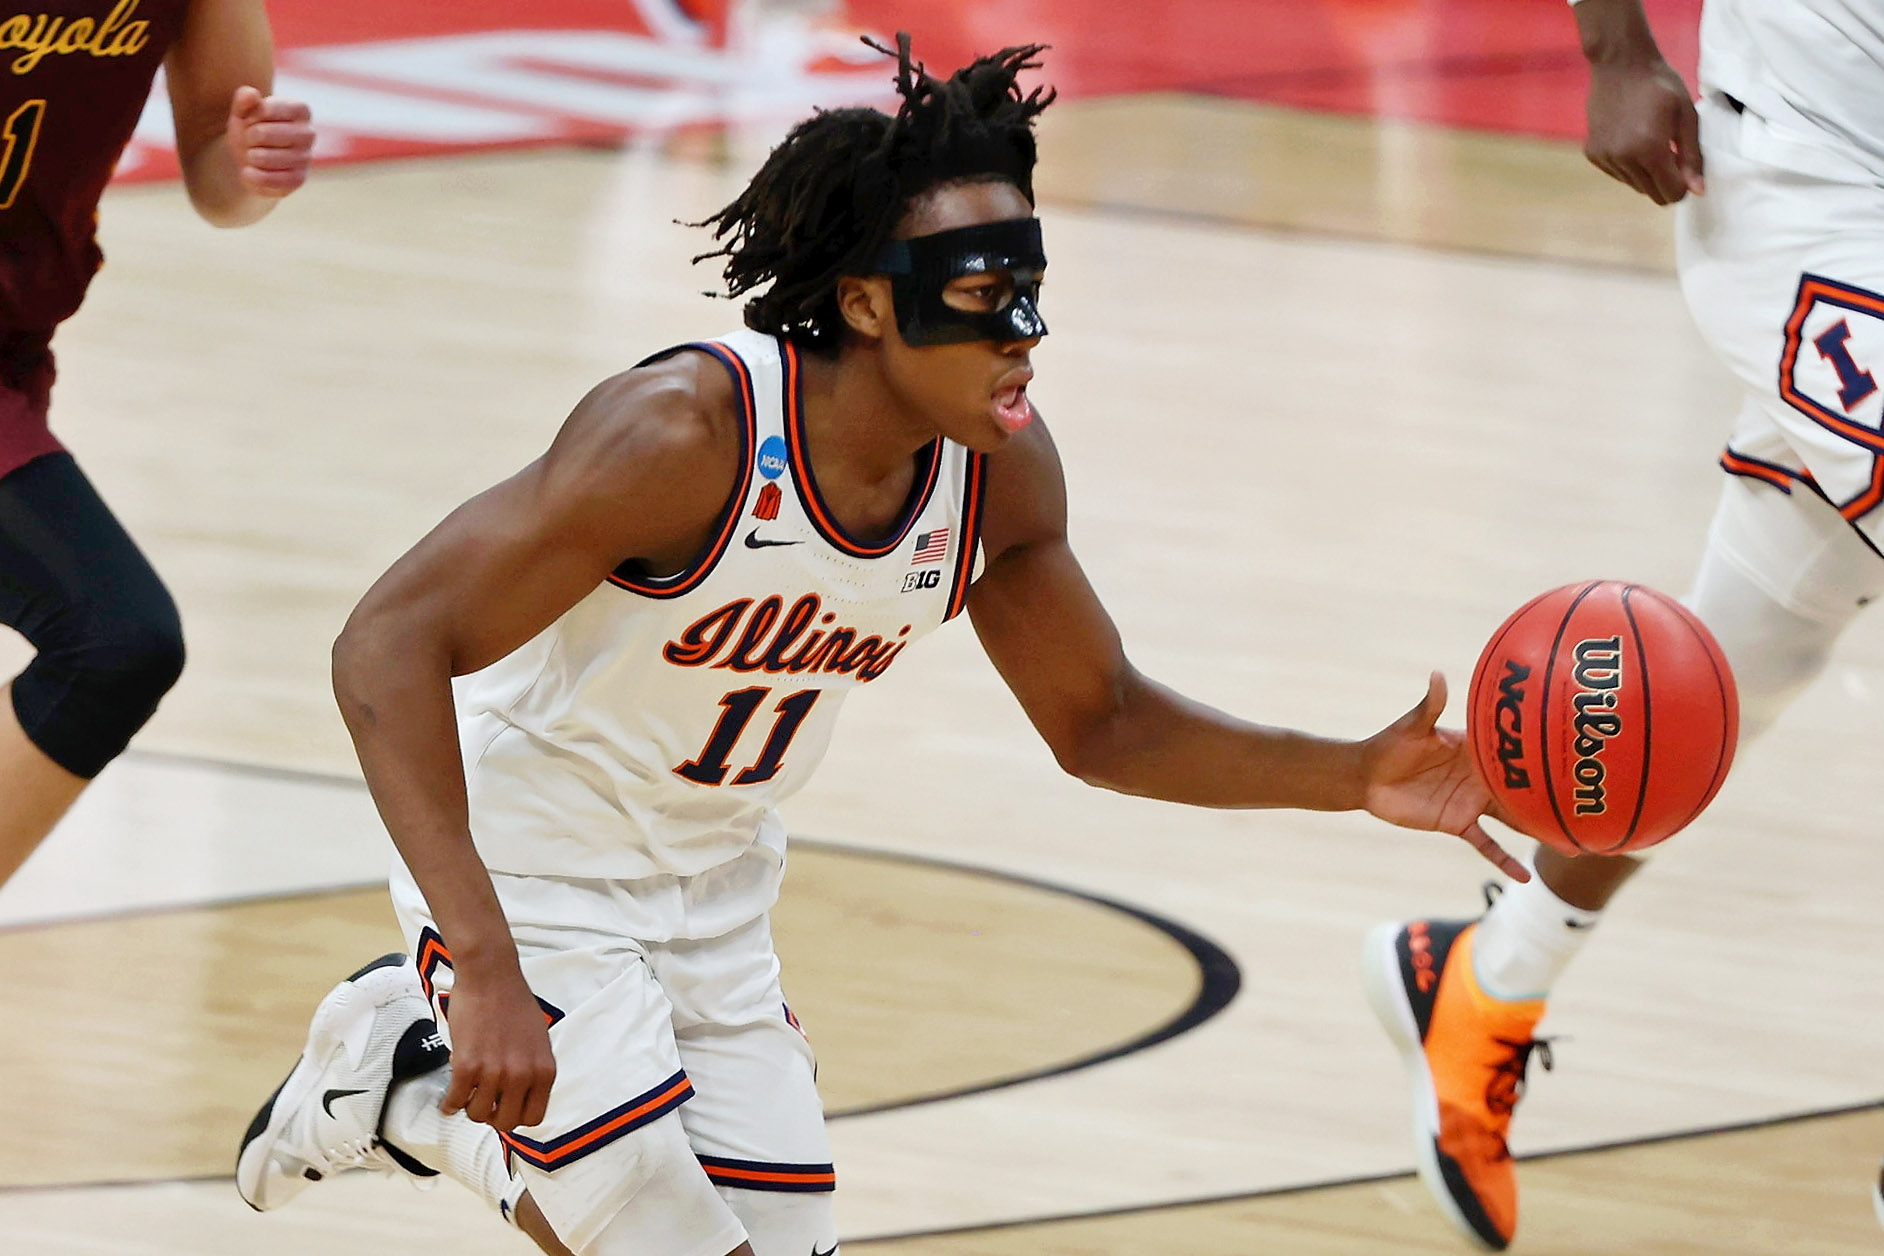 Illinois Fighting Illini guard Ayo Dosunmu dribbles the ball up the court against the Loyola Ramblers during the first half in the second round of the 2021 NCAA Tournament at Bankers Life Fieldhouse.